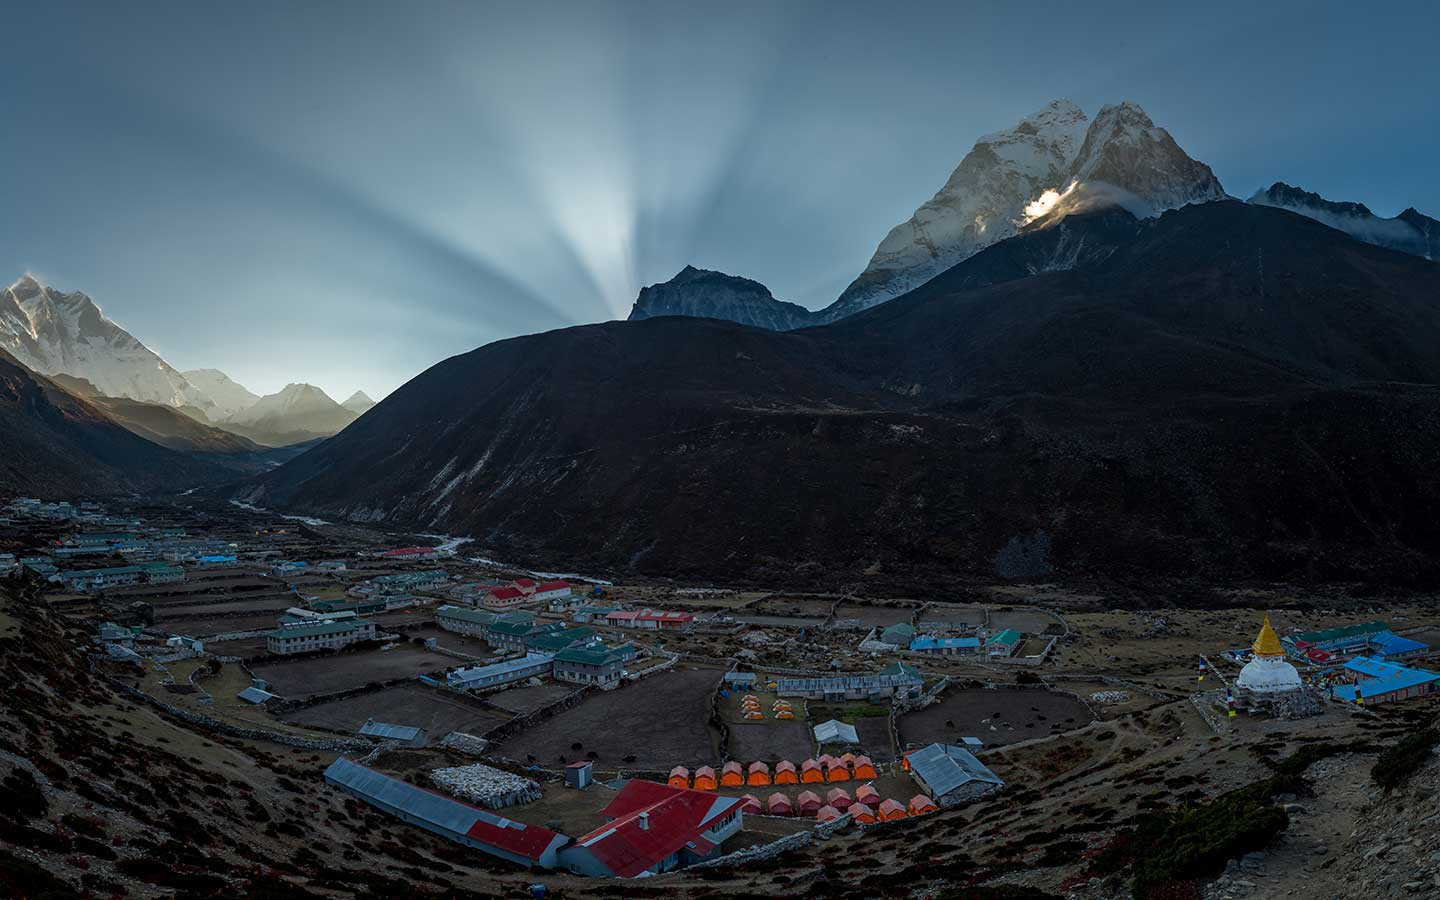 dingboche village